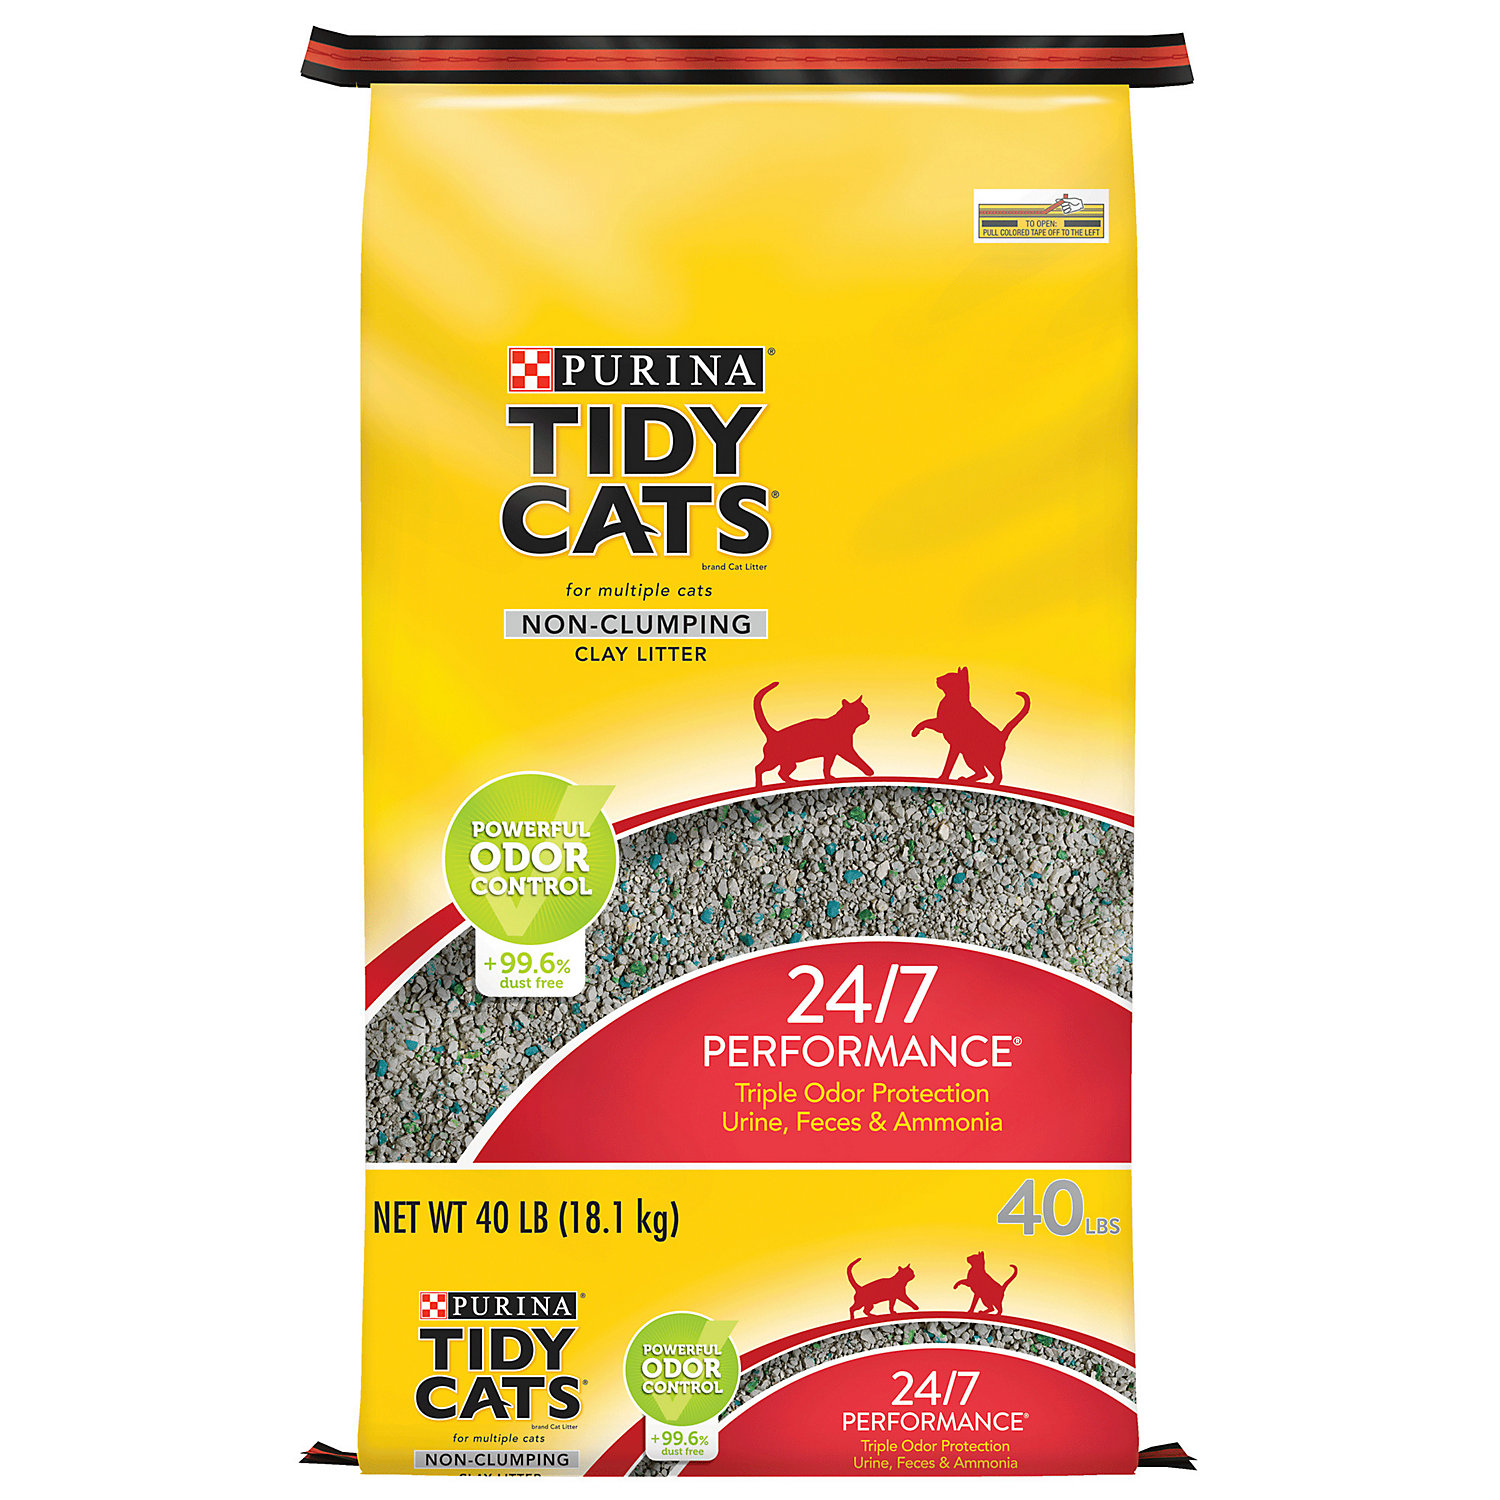 Purina Tidy Cats Non Clumping Cat Litter 24/7 Performance For Multiple Cats